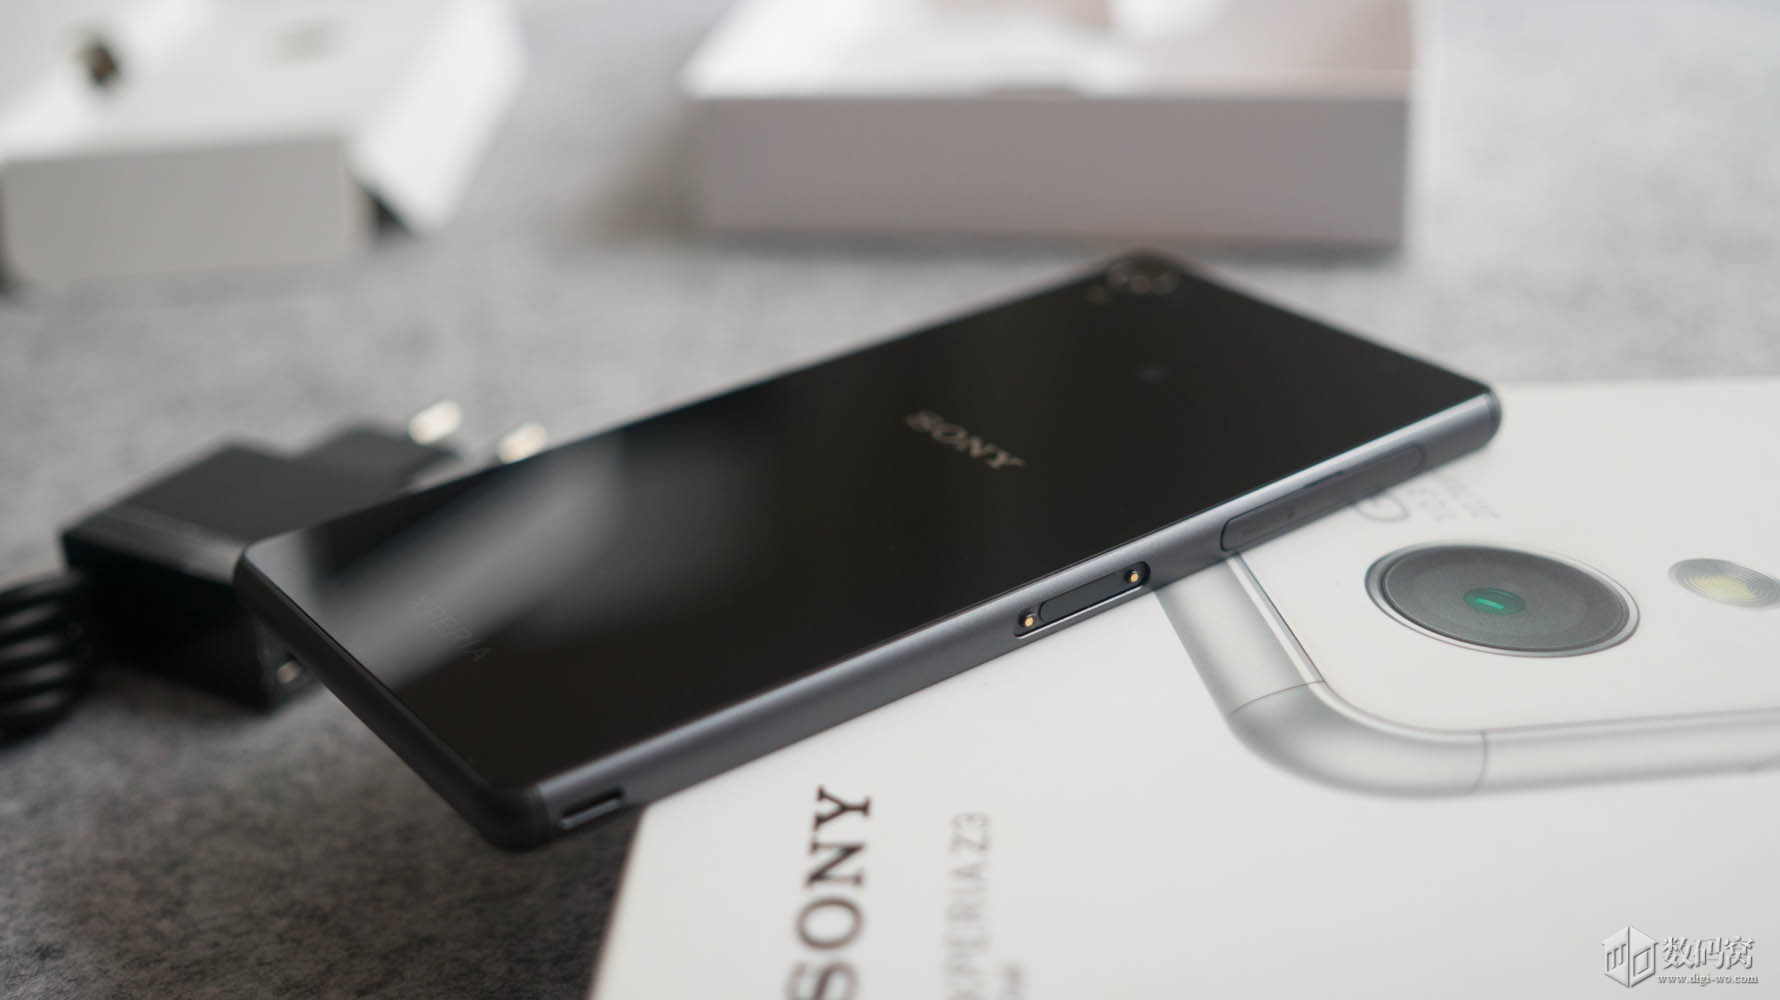 Xperia Z3 Dual Black hands on